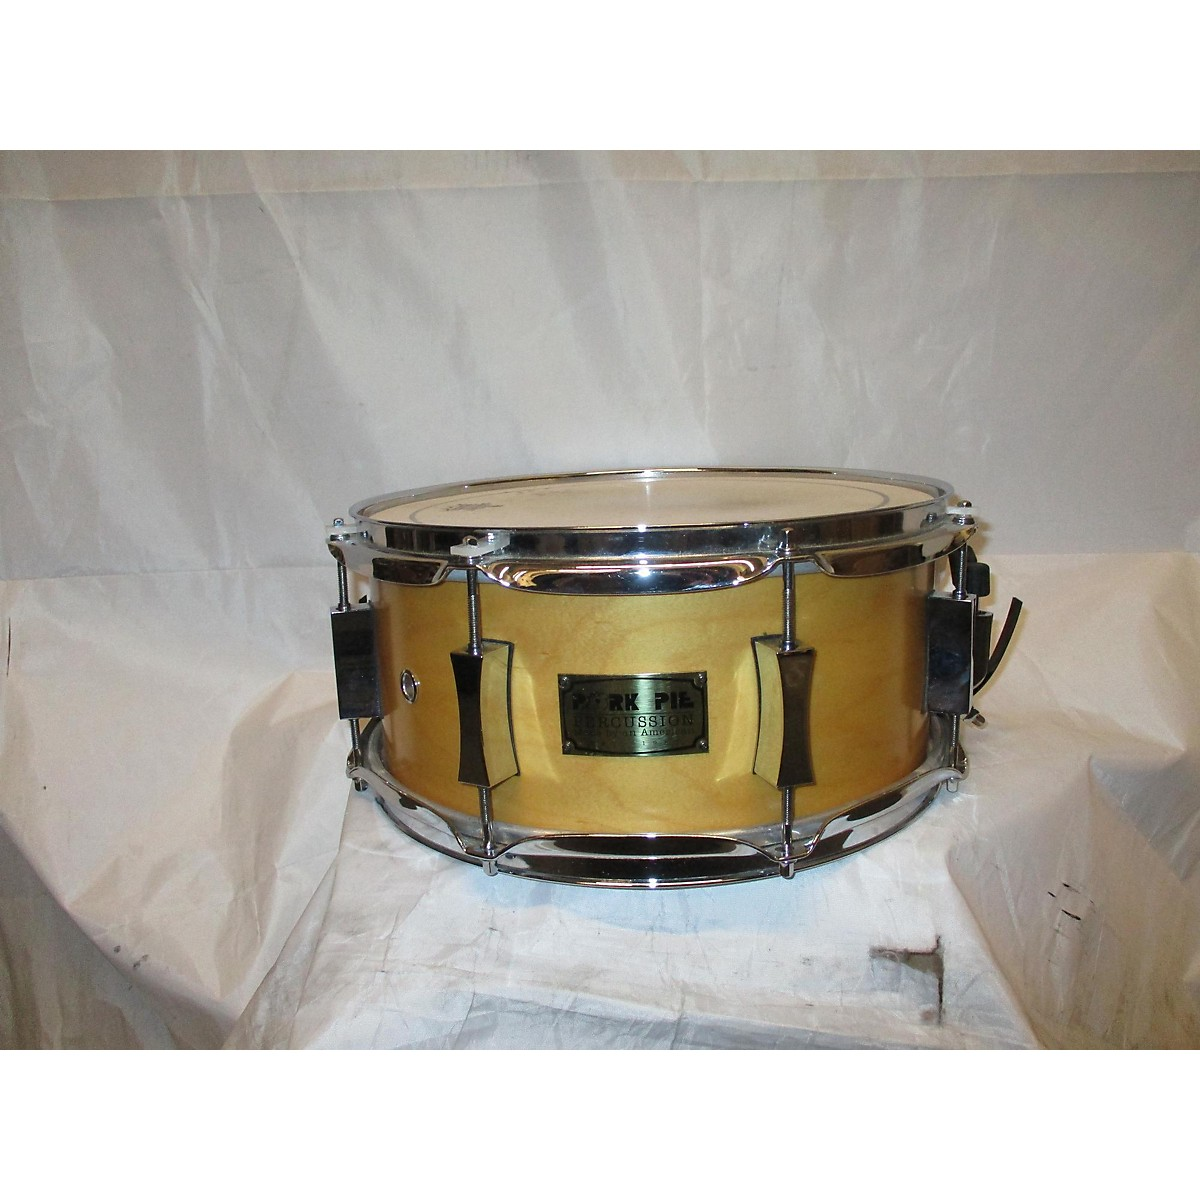 Pork Pie 5.5X13 USA Maple Drum